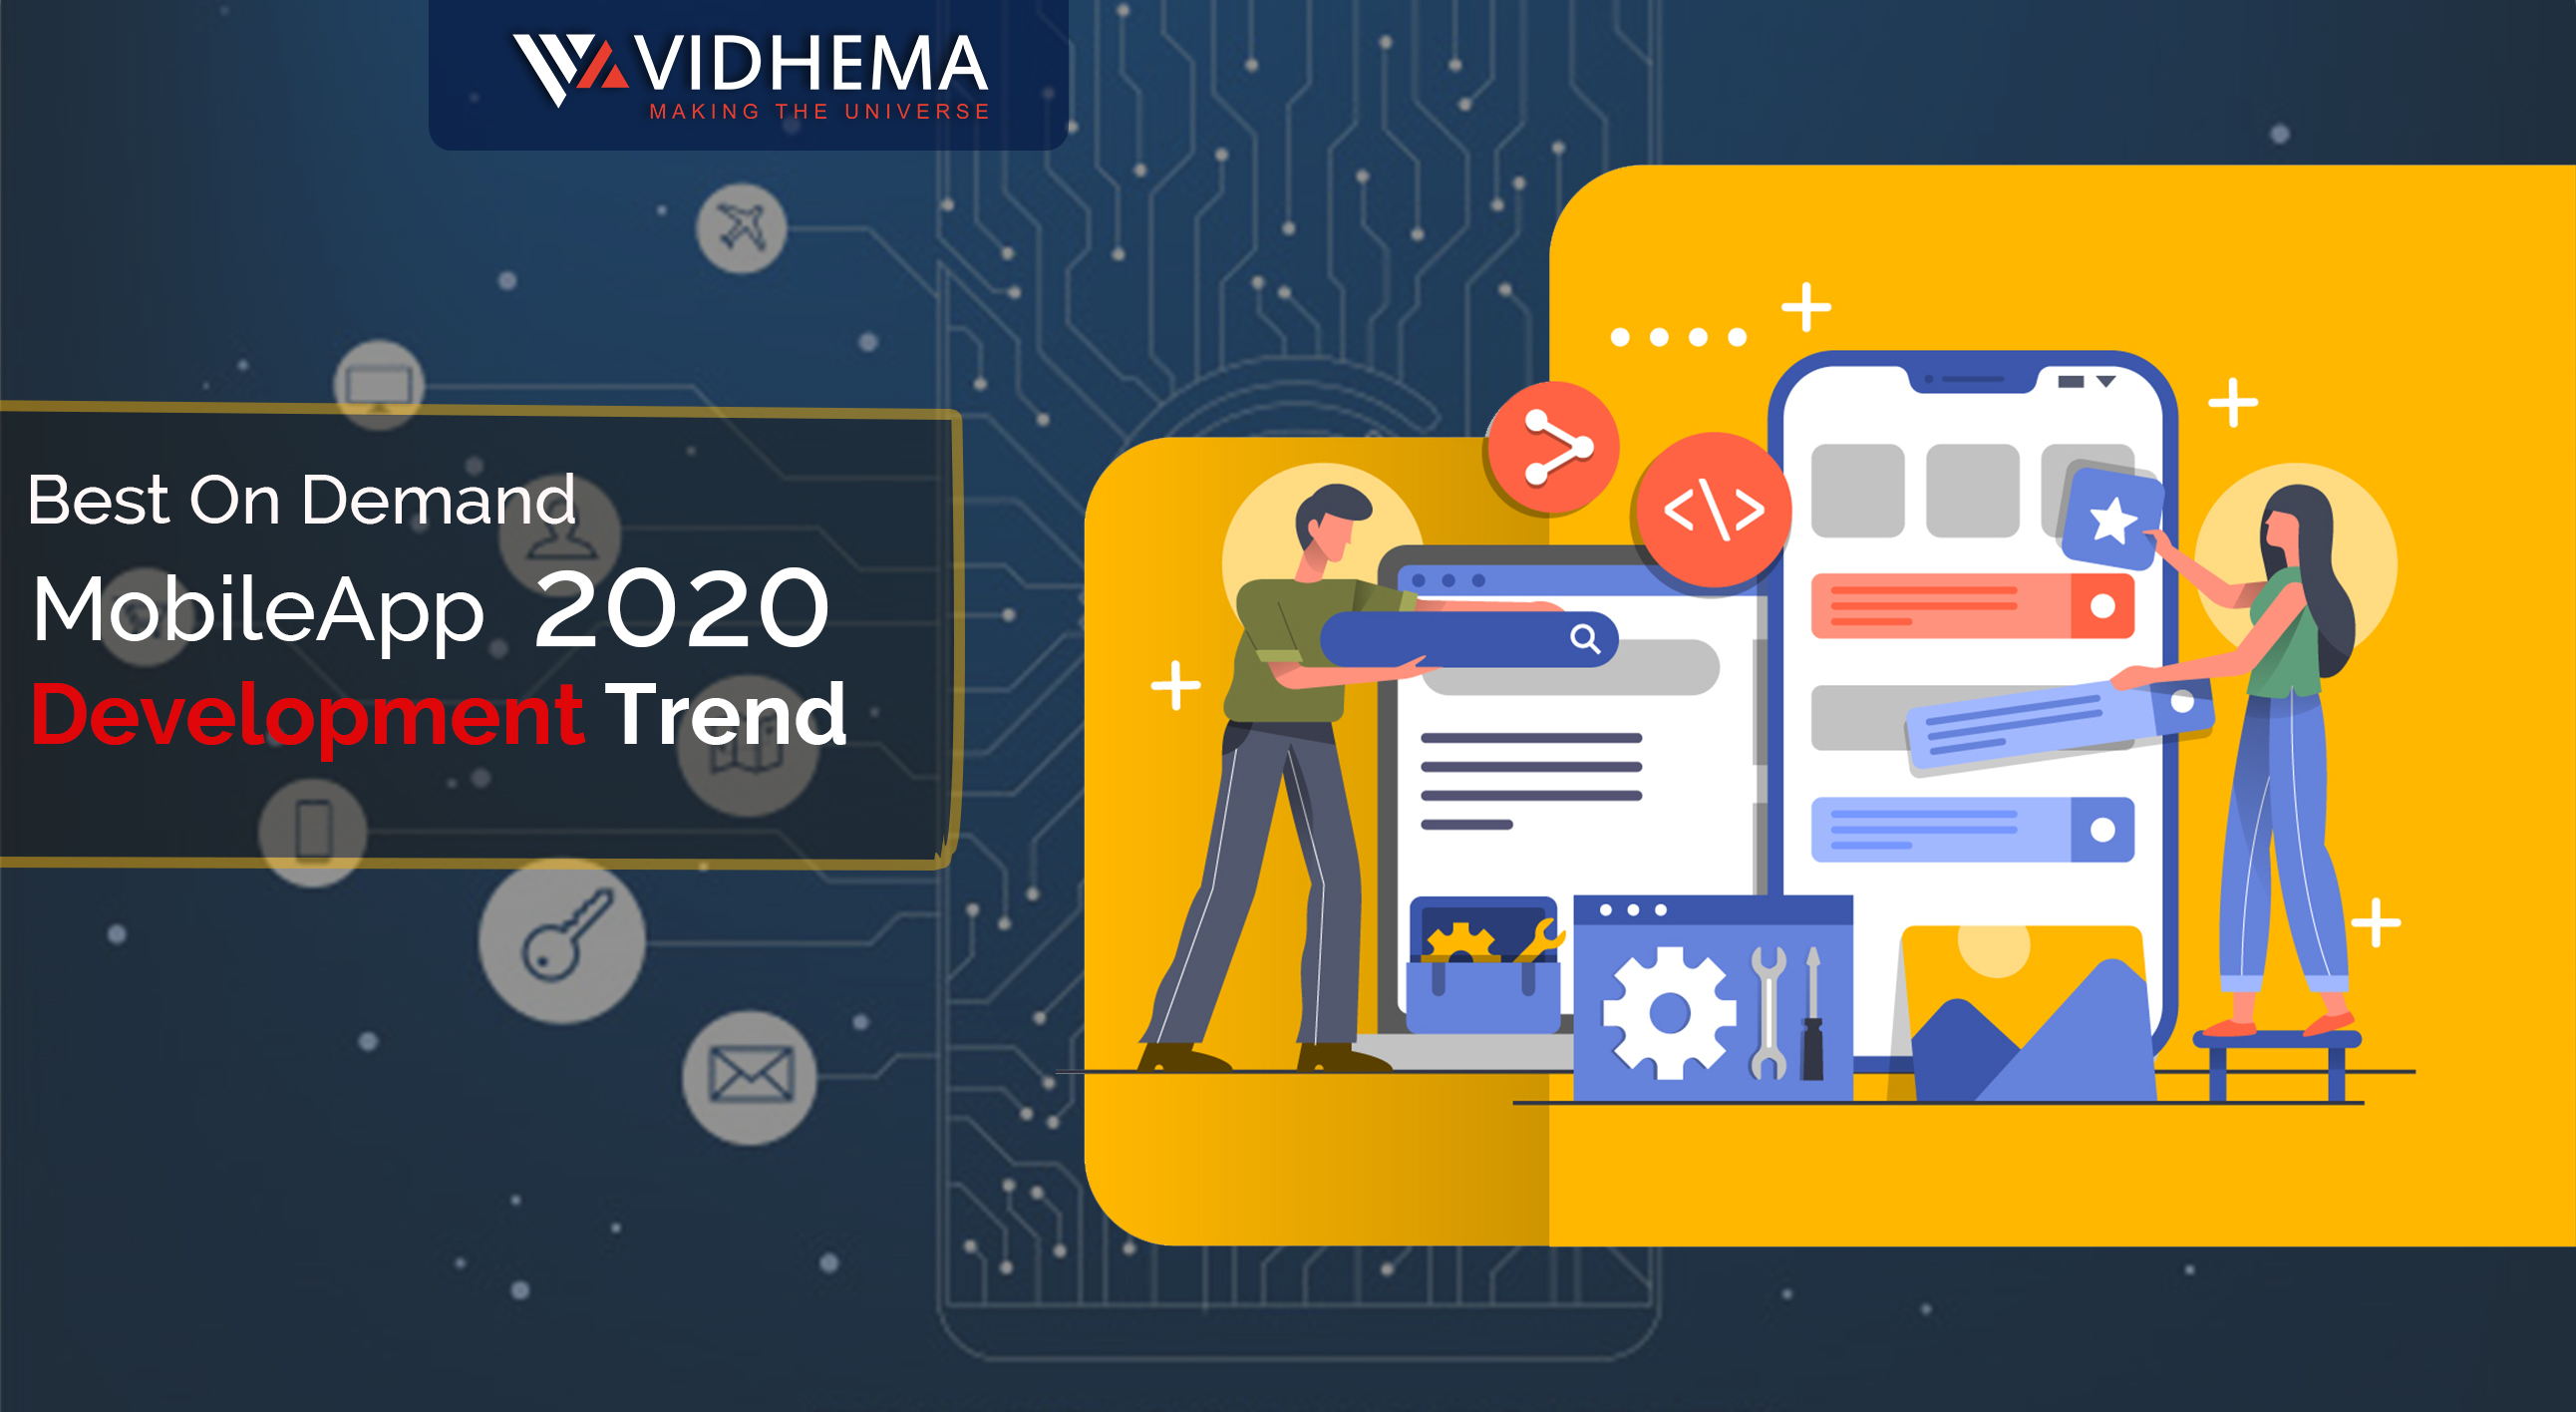 Best On-Demand Mobile App Development Trend 2020